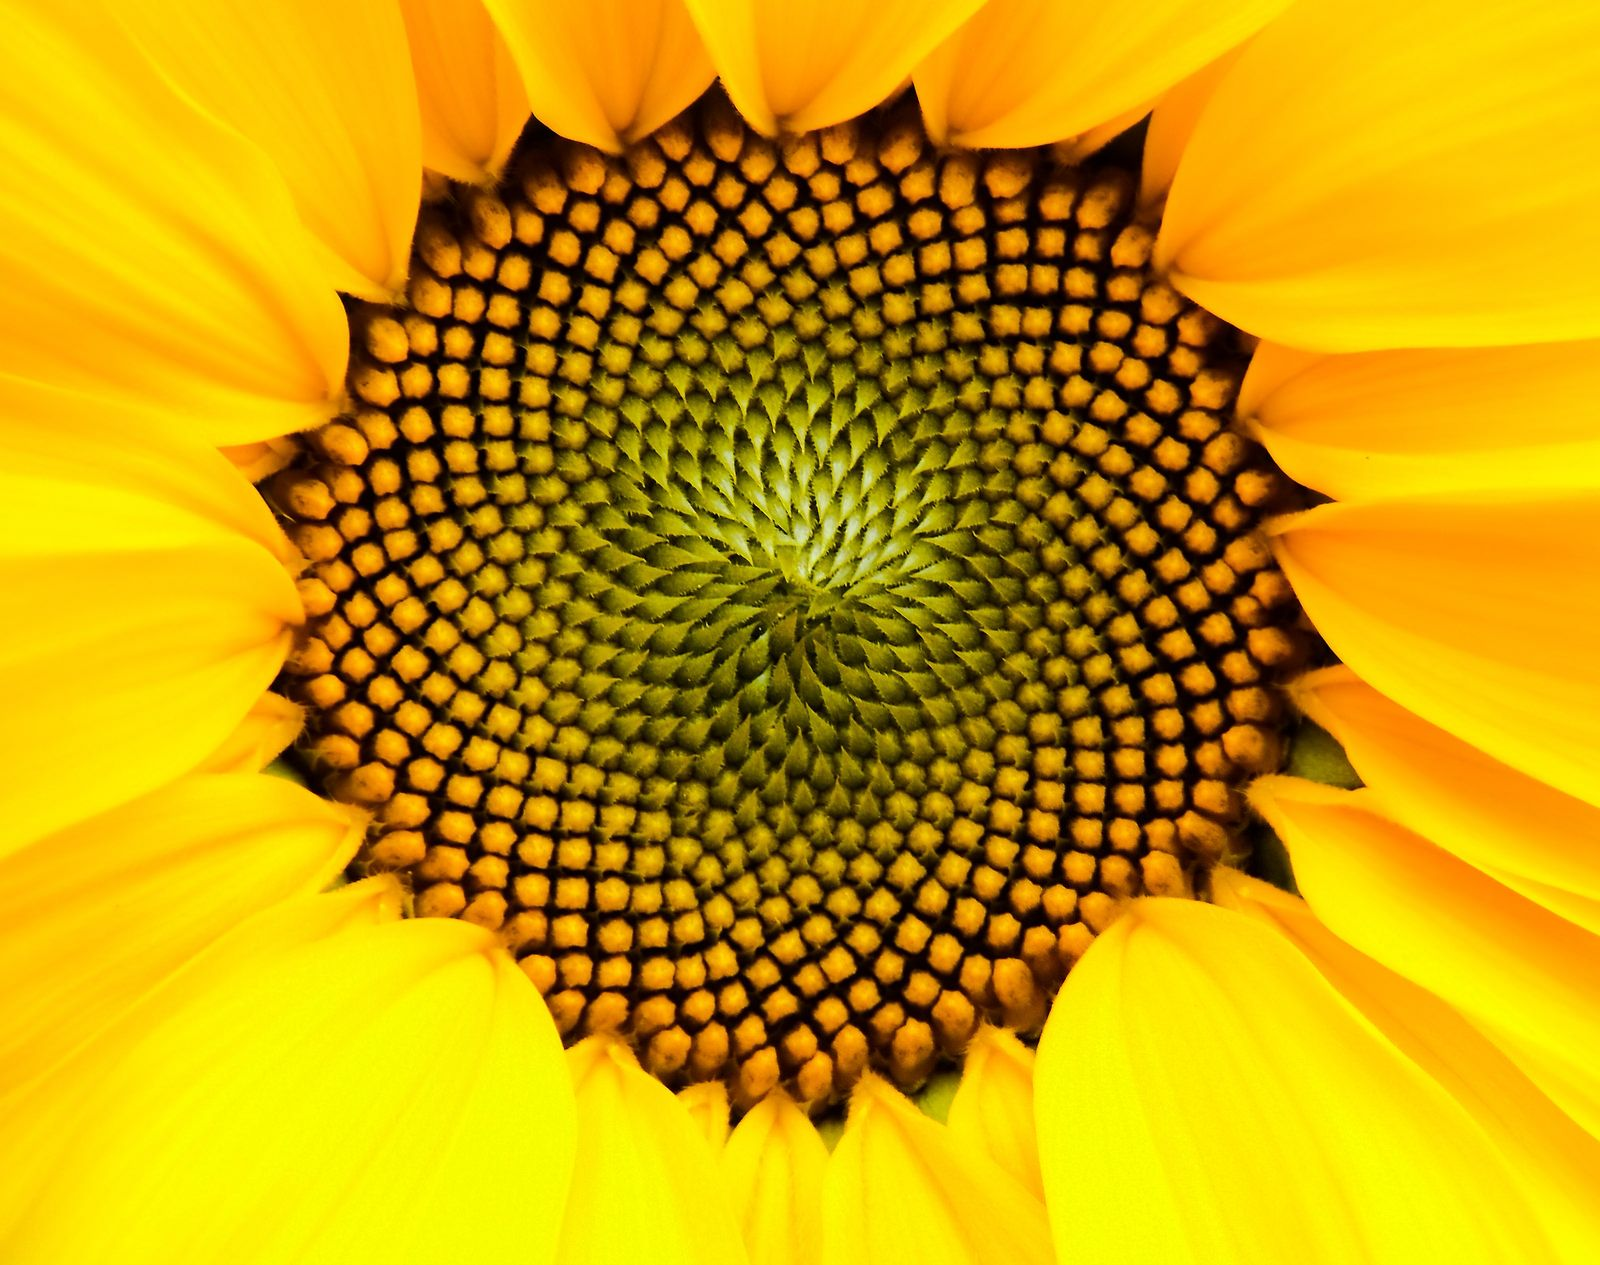 Color Schemes Flower Head [Inflorescence] Of Sunflower [Helianthus], With Outer Ray